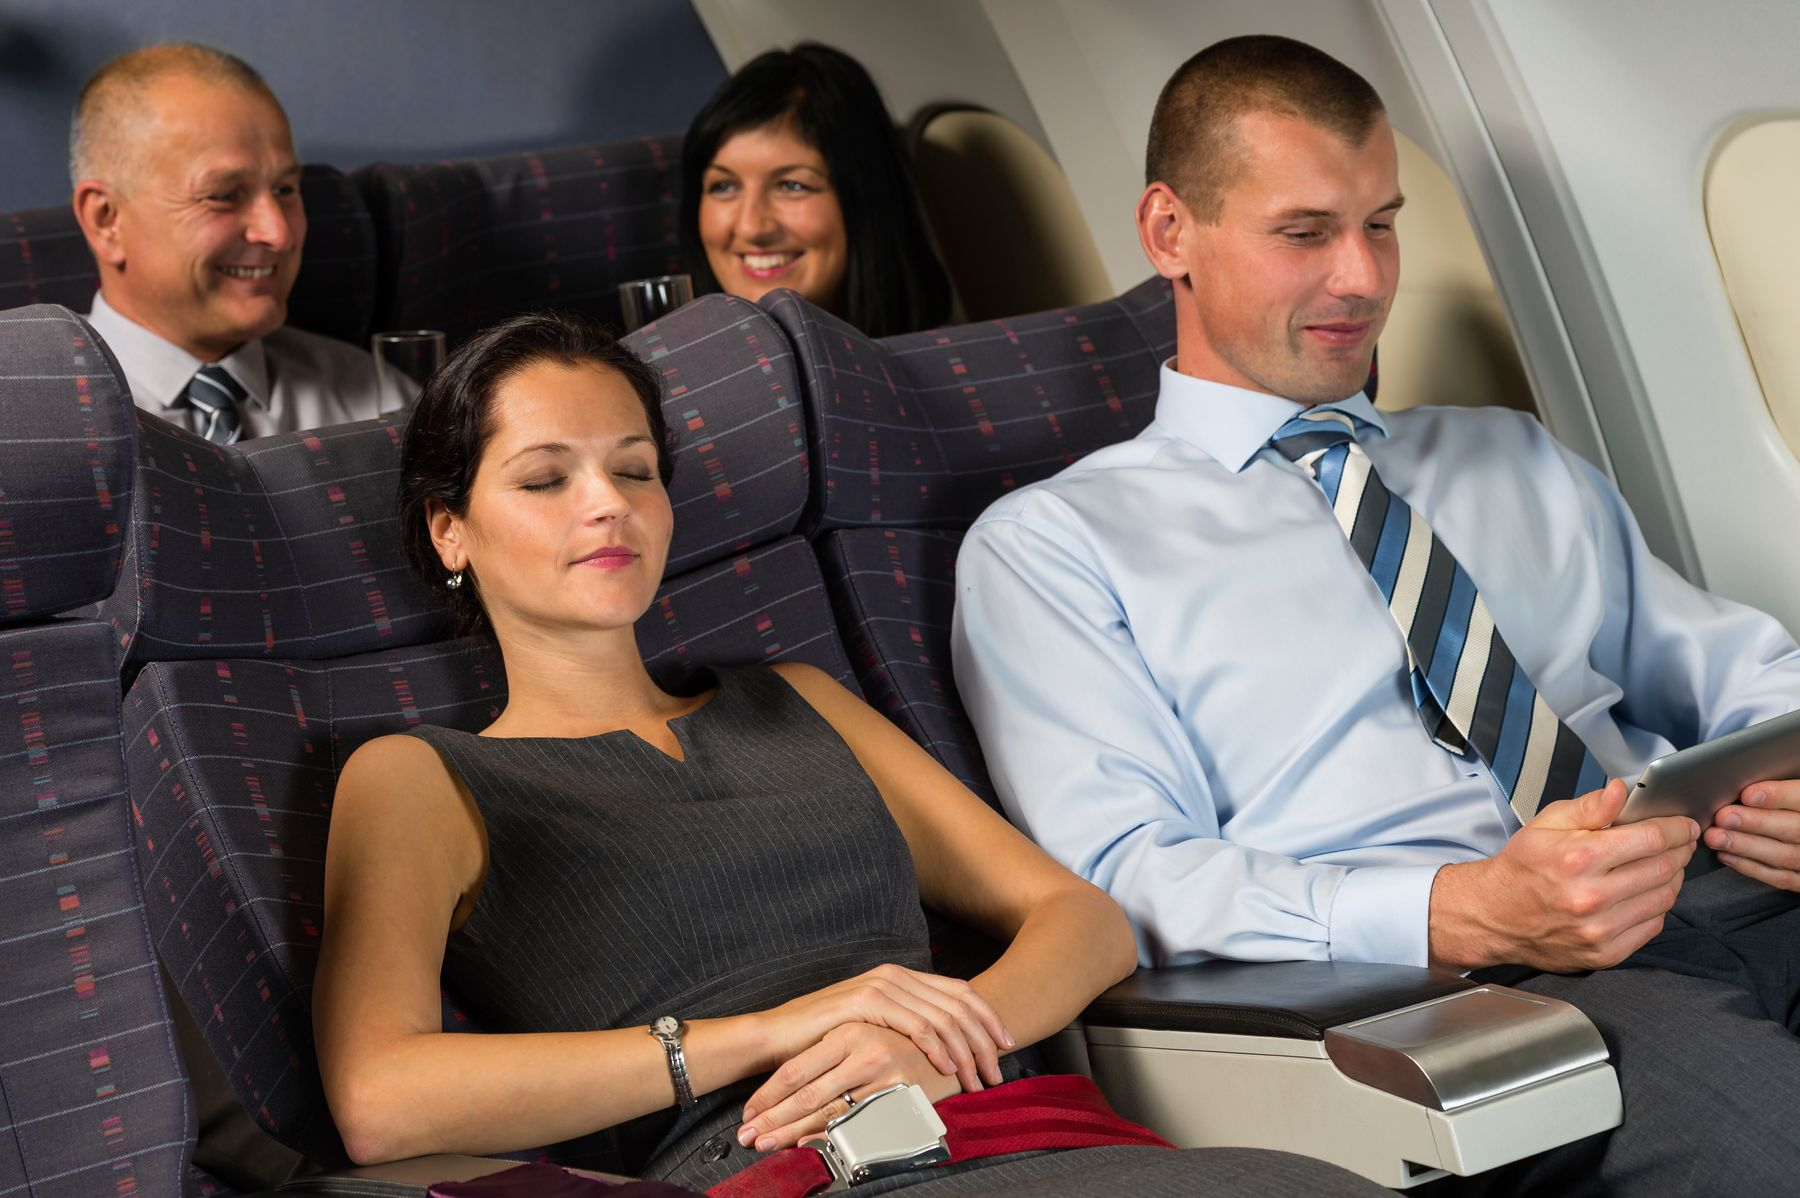 Business class flights are a luxury travel option